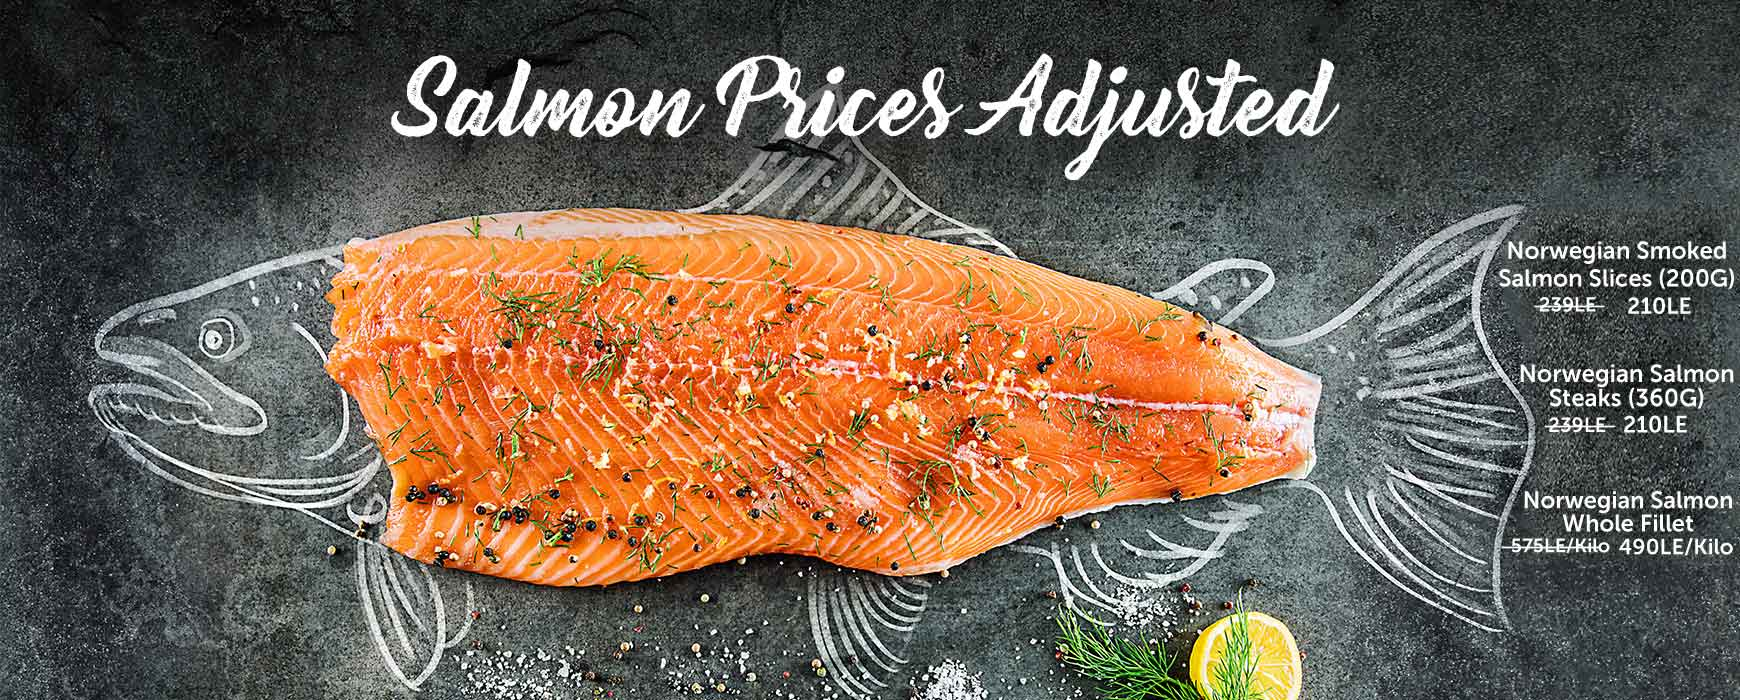 Salmon Adjusted Prices